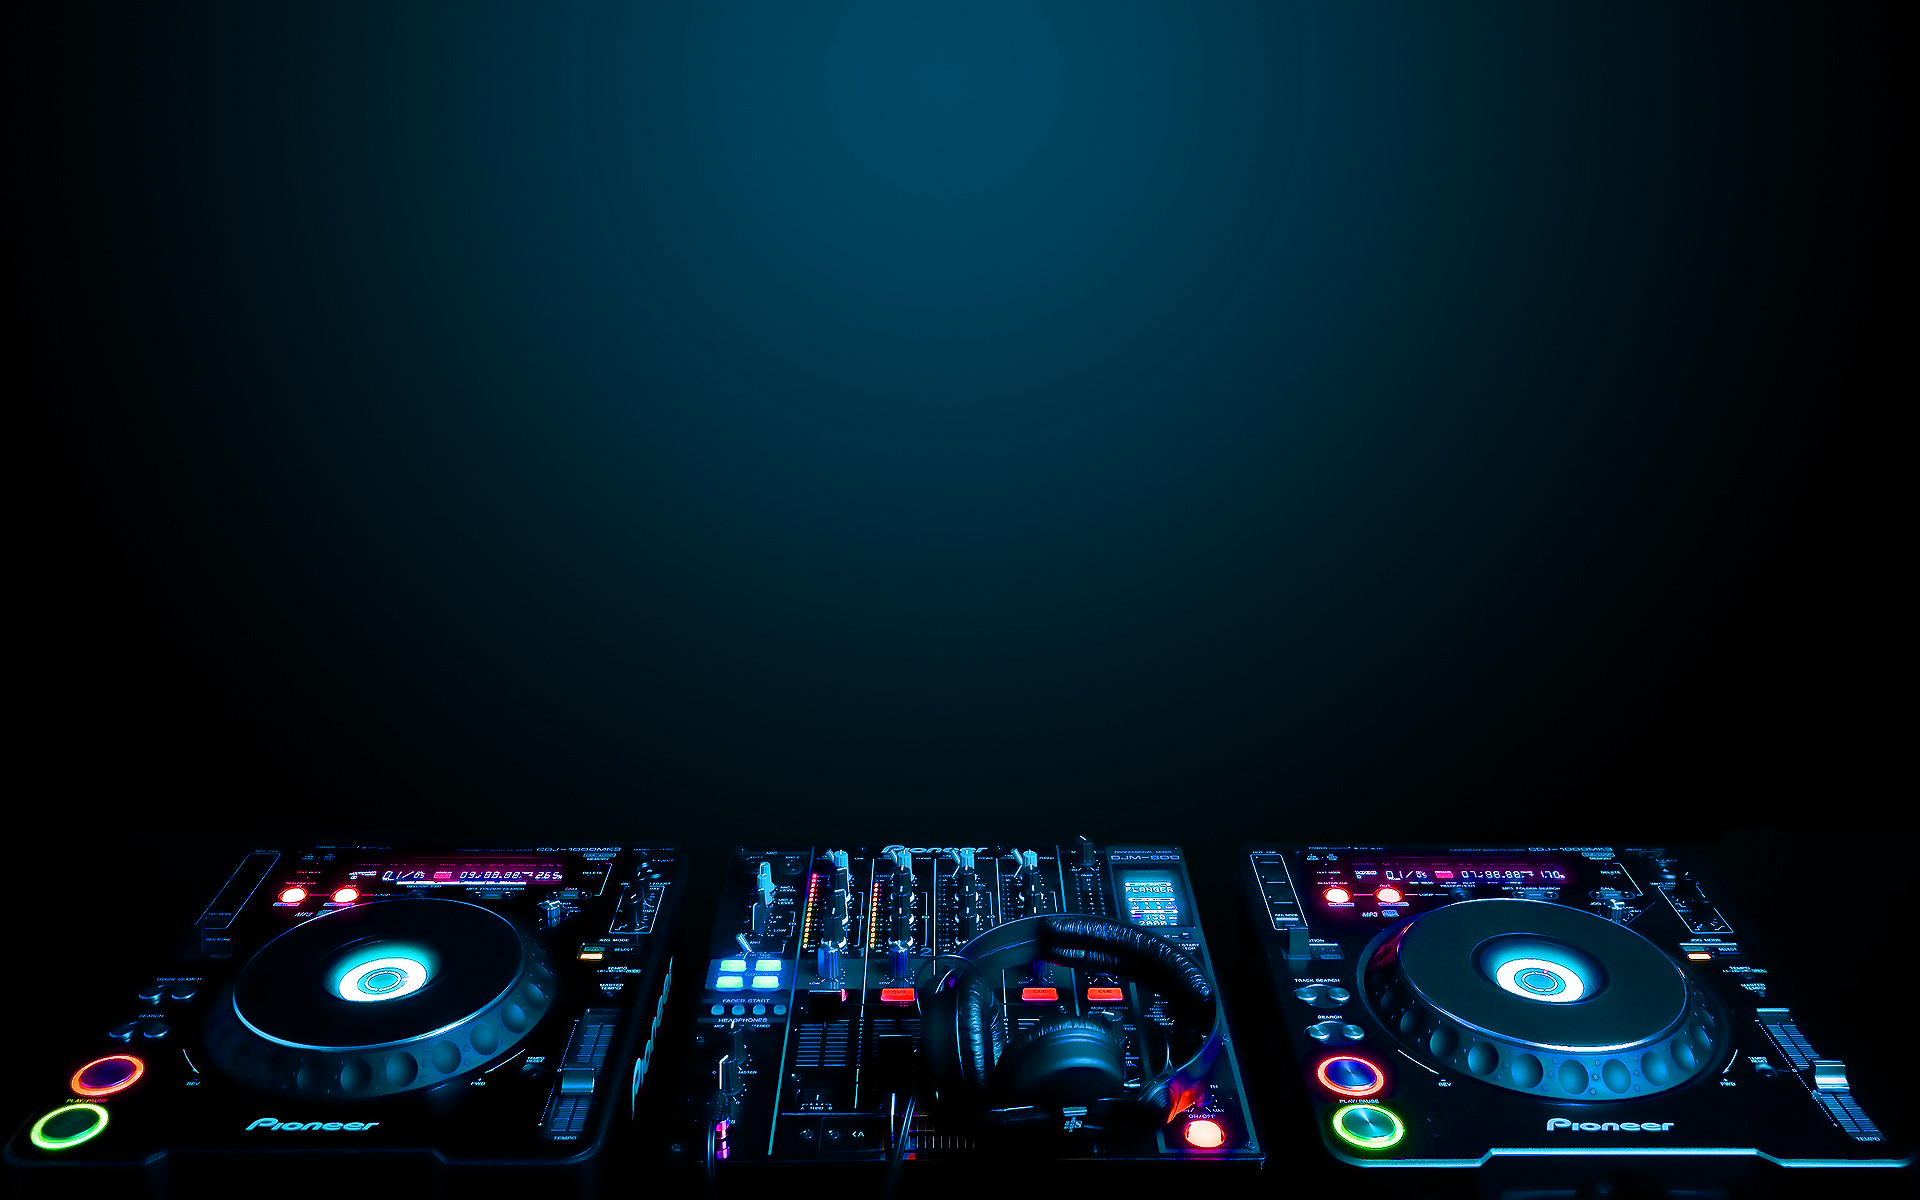 Stereo wallpaper wallpapersafari - Music hd wallpapers free download ...